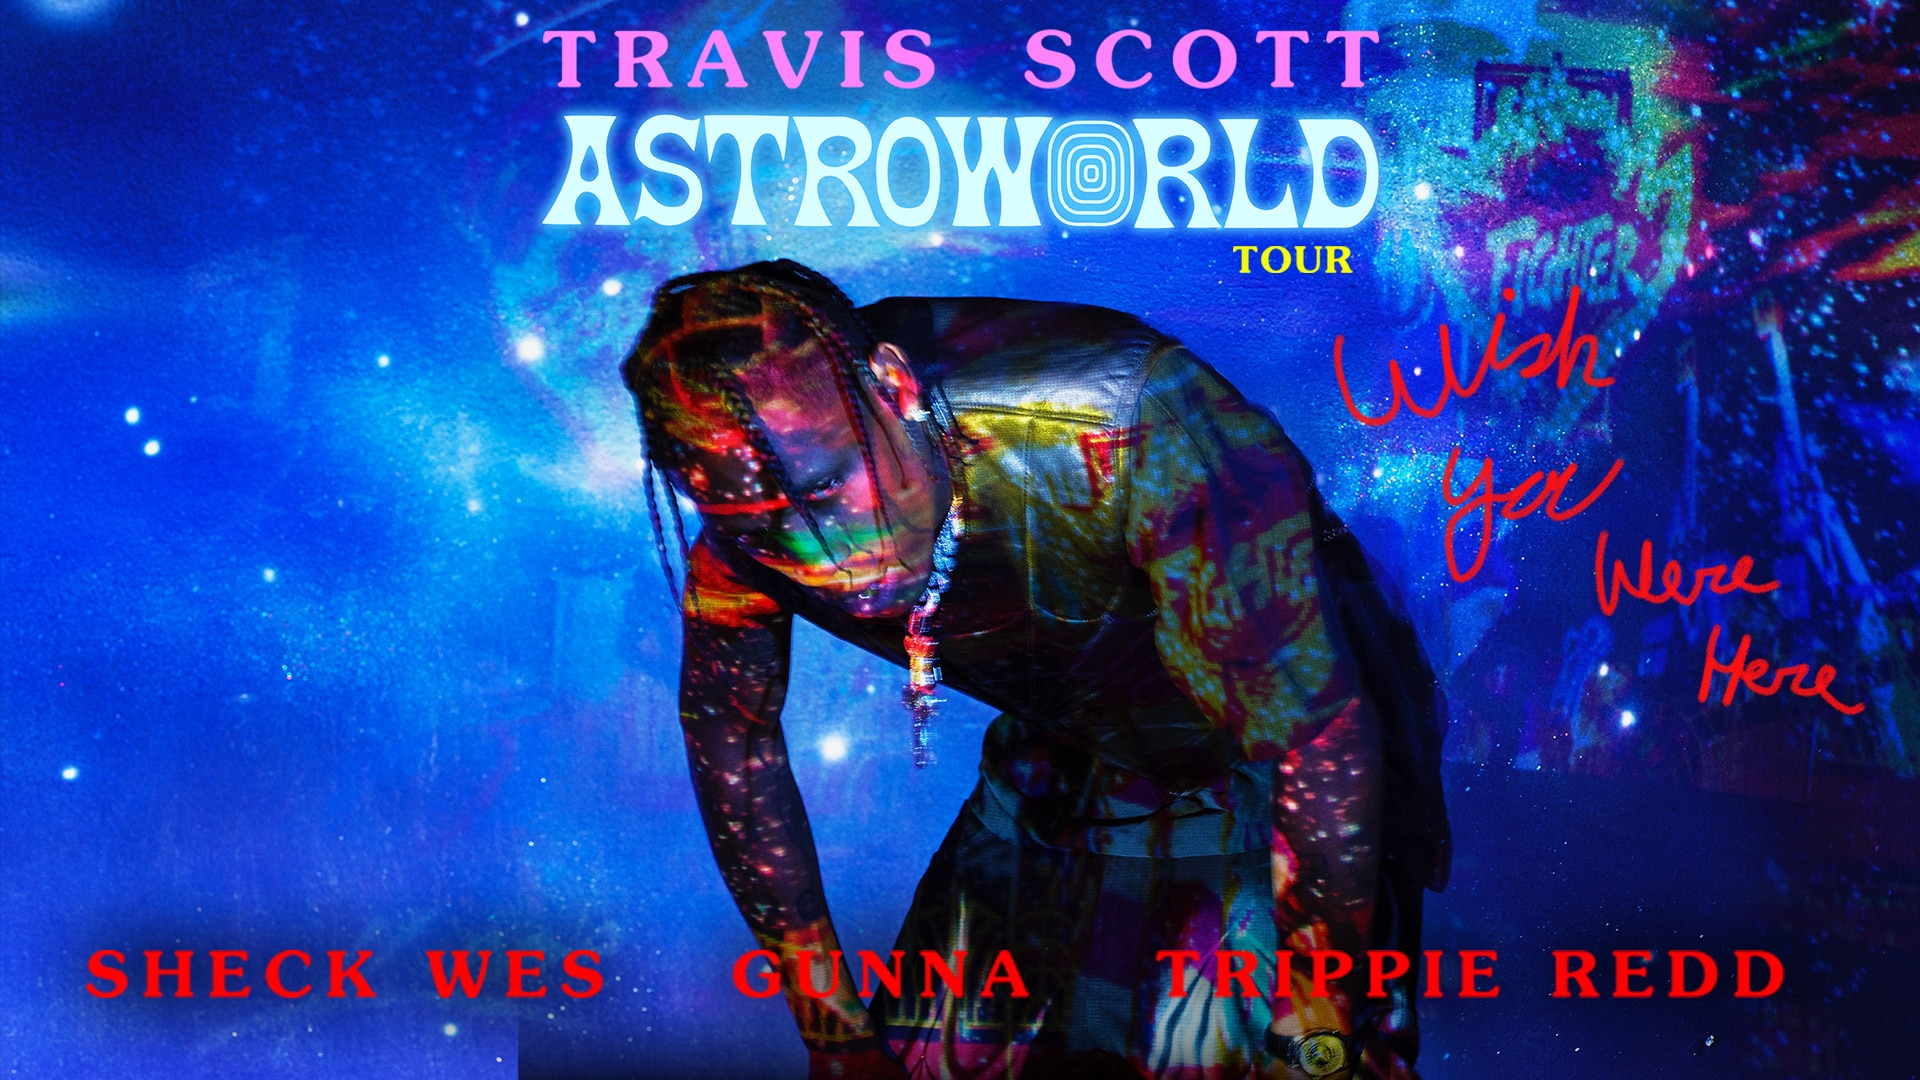 c129f3e131db Travis Scott - Astroworld: Wish You Were Here Tour | Capital One Arena